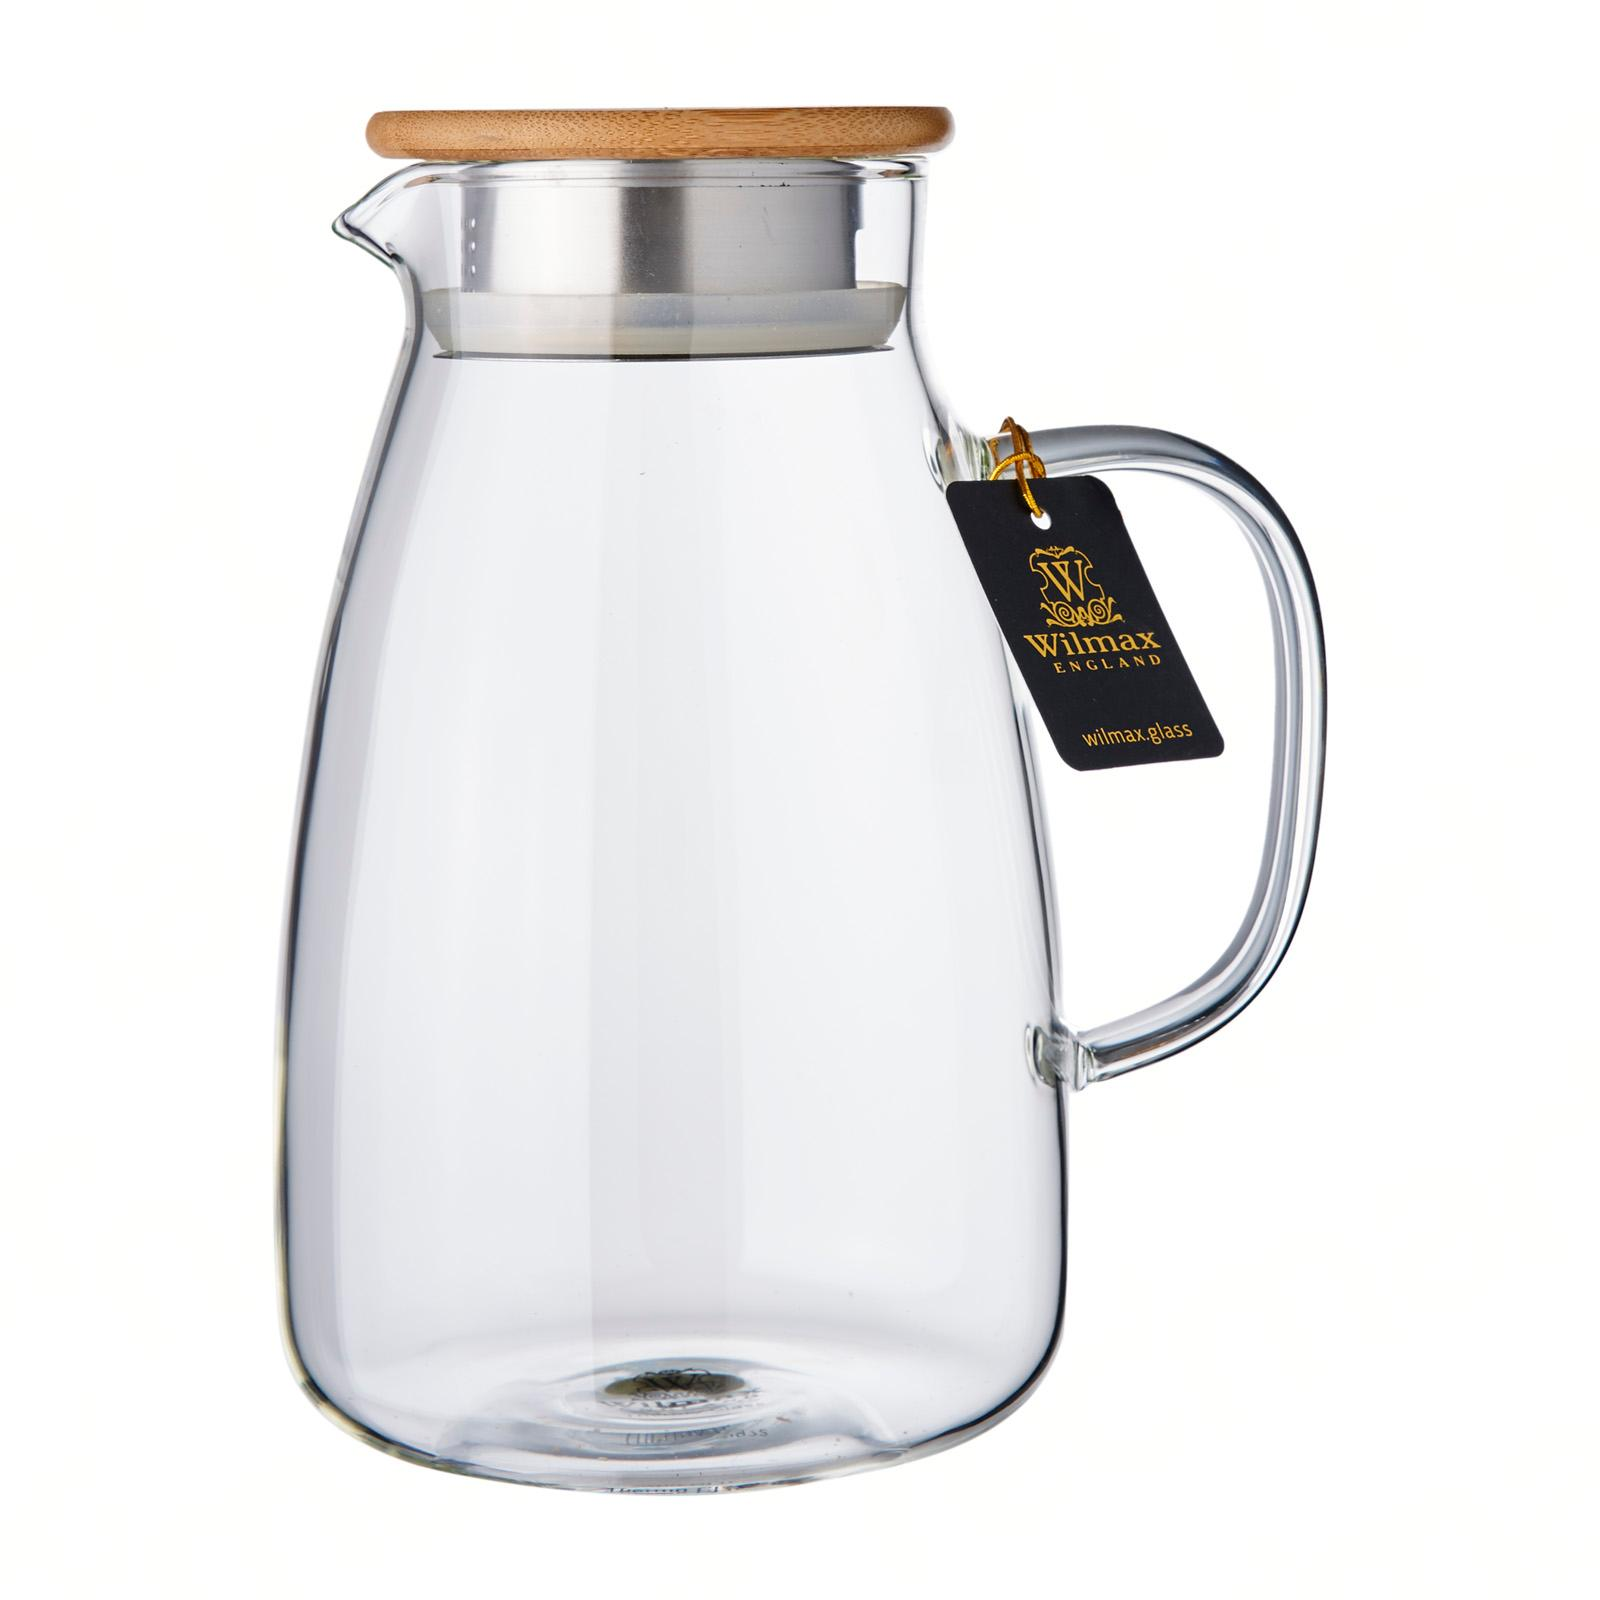 Wilmax England Thermo Glass Jug 1500 ML